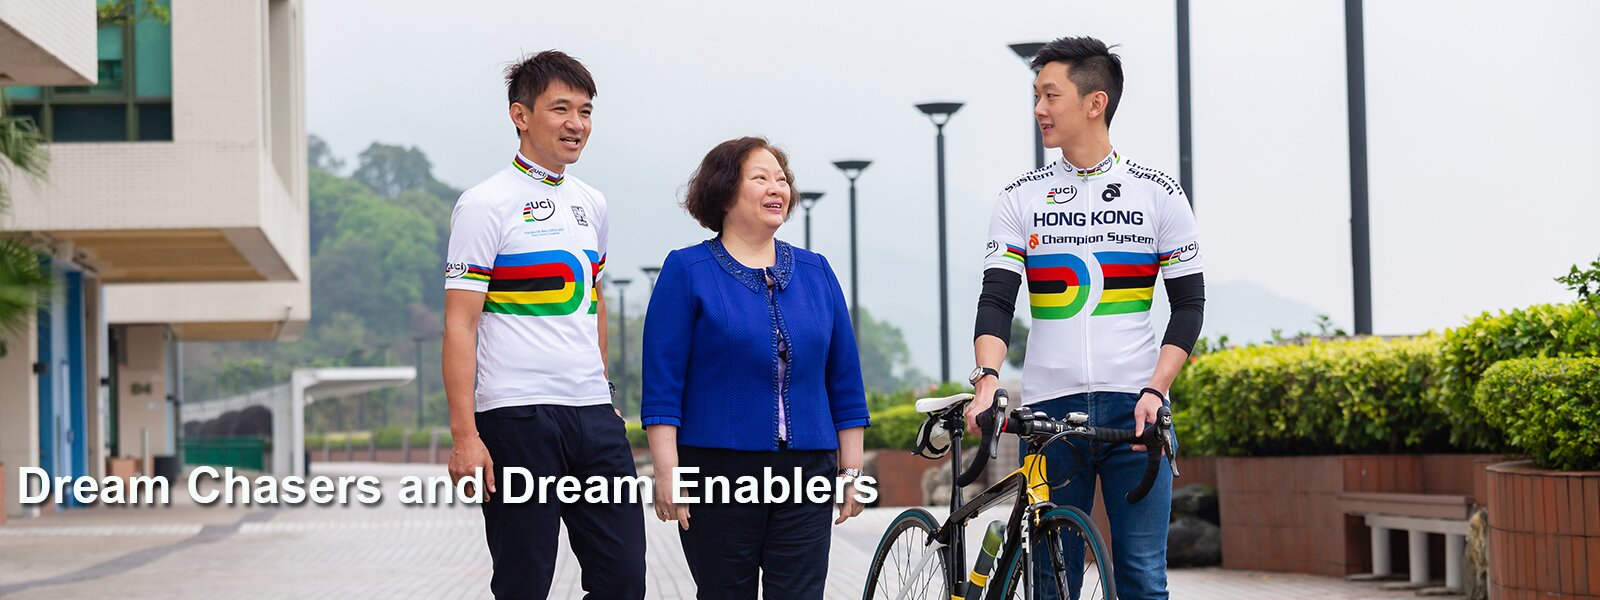 Dream Chasers and Dream Enablers